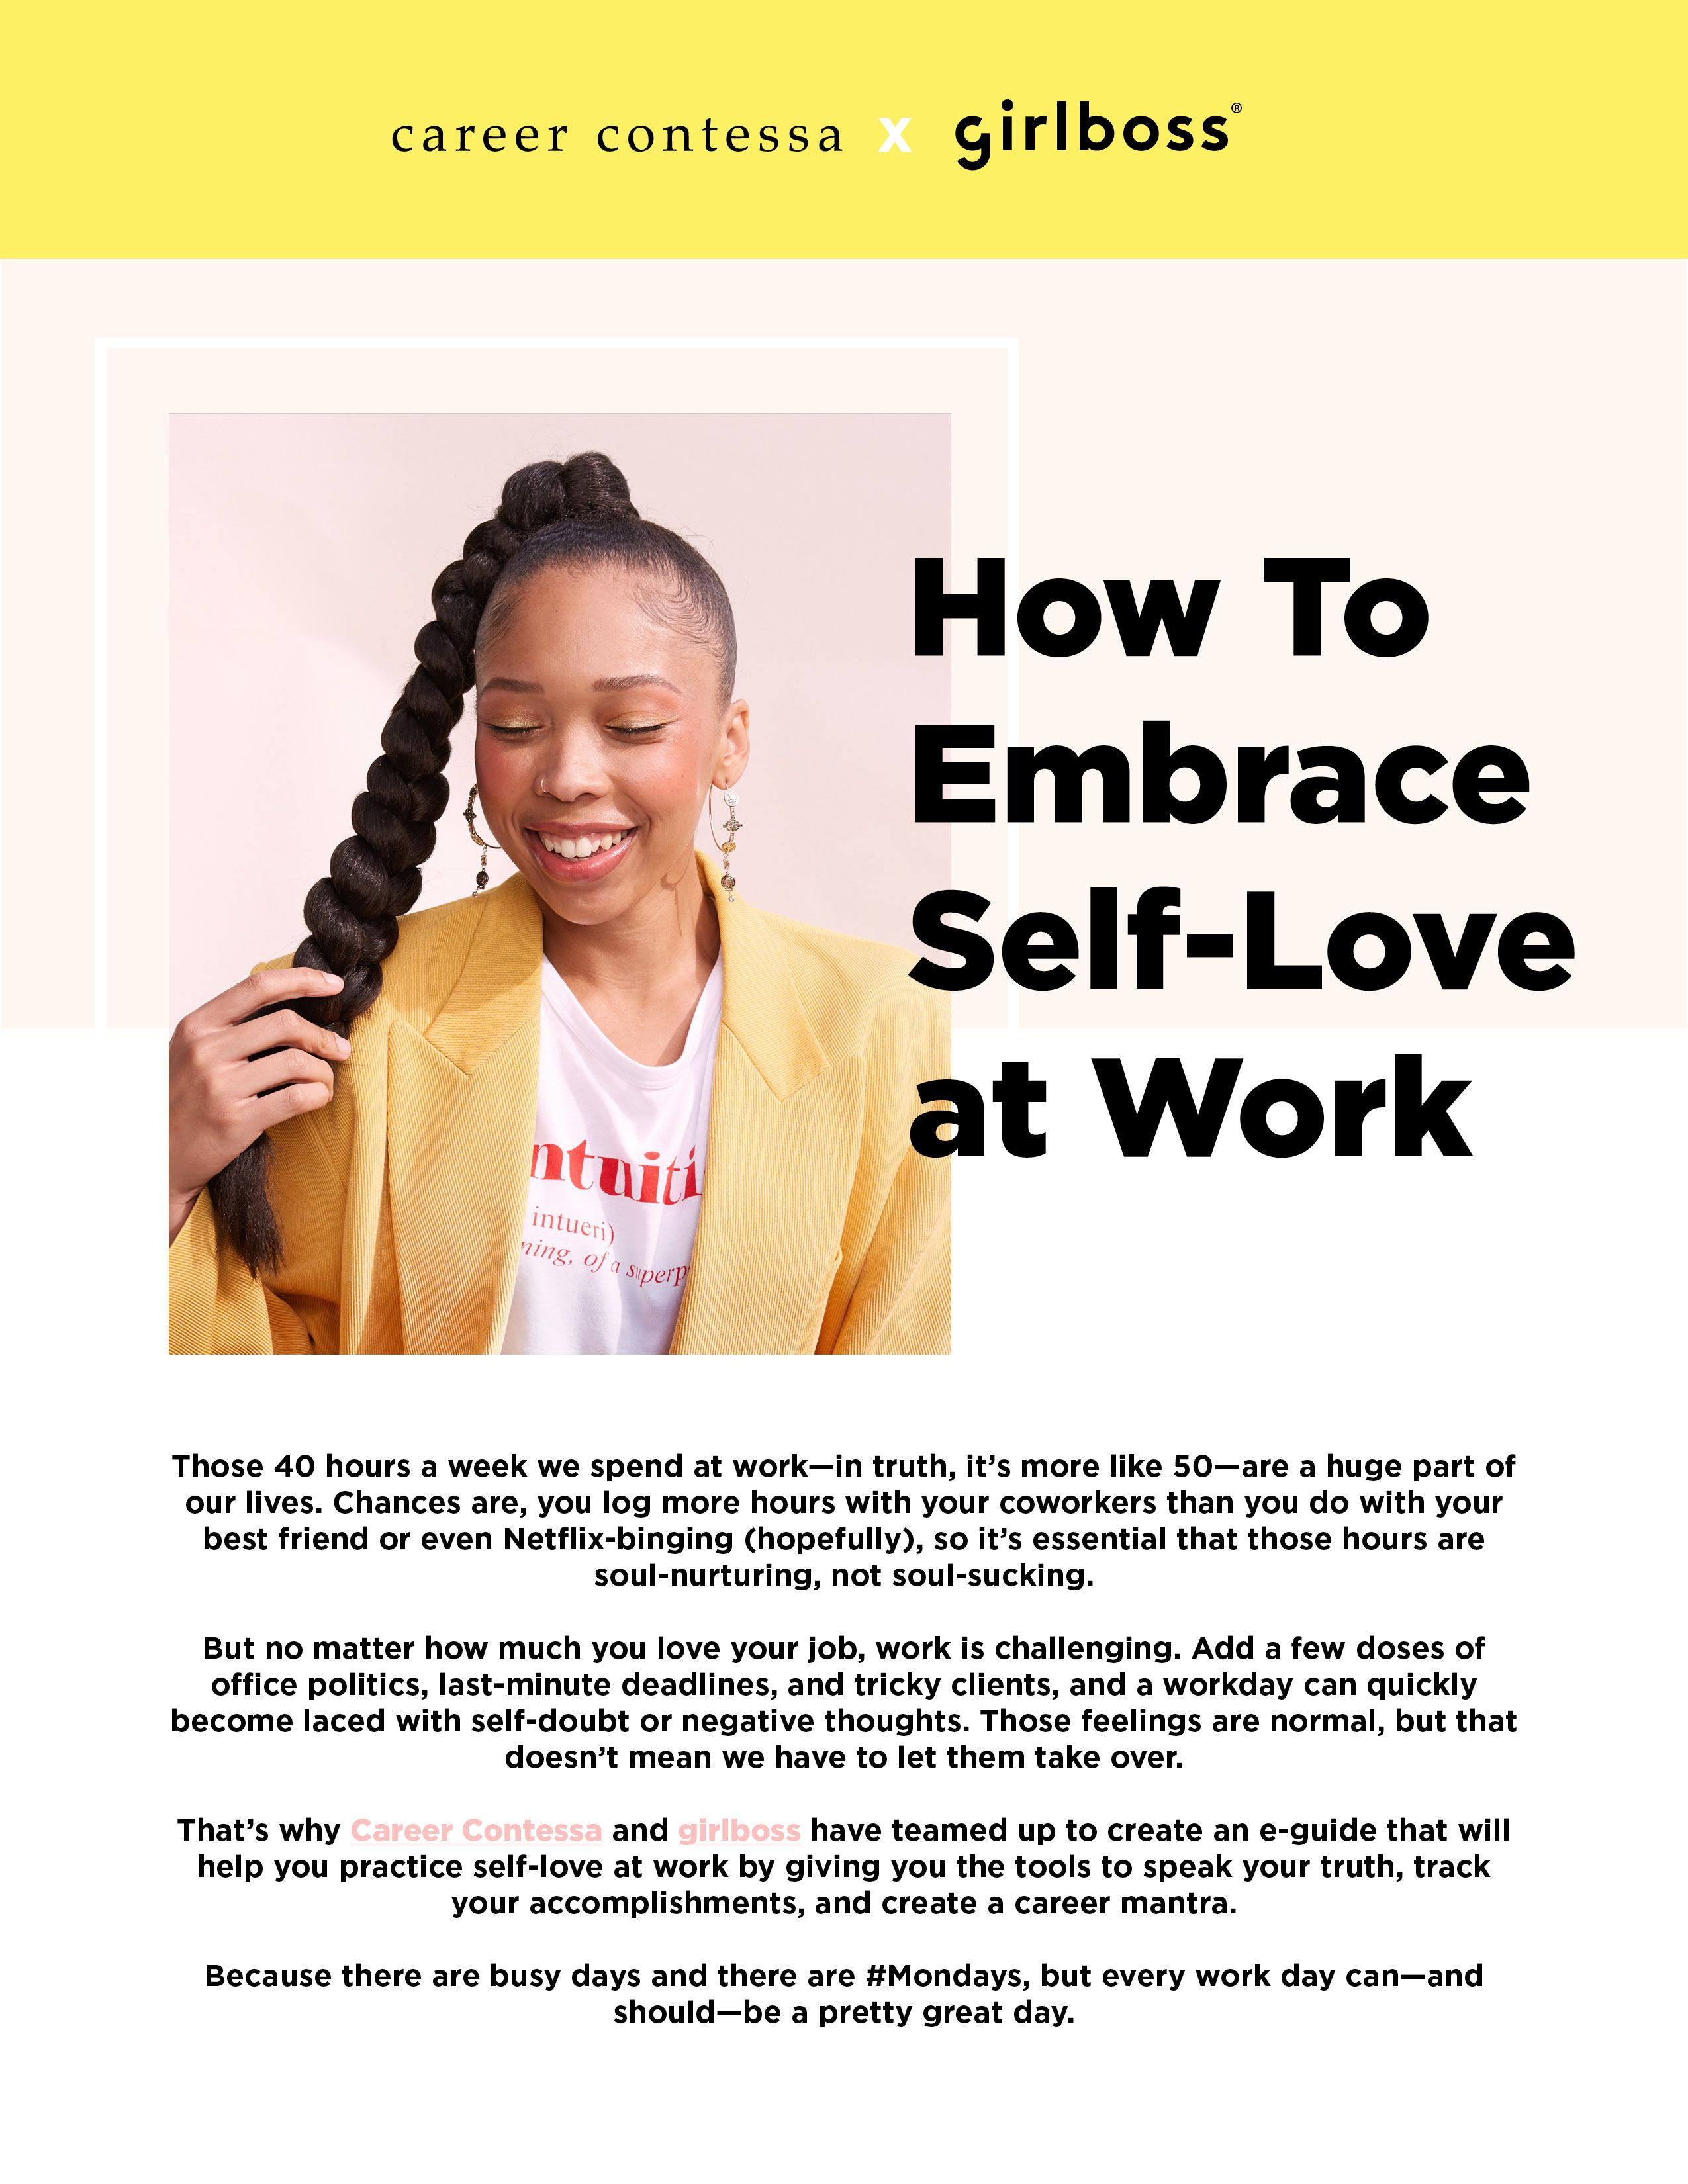 Download The Free E Guide From Career Contessa And